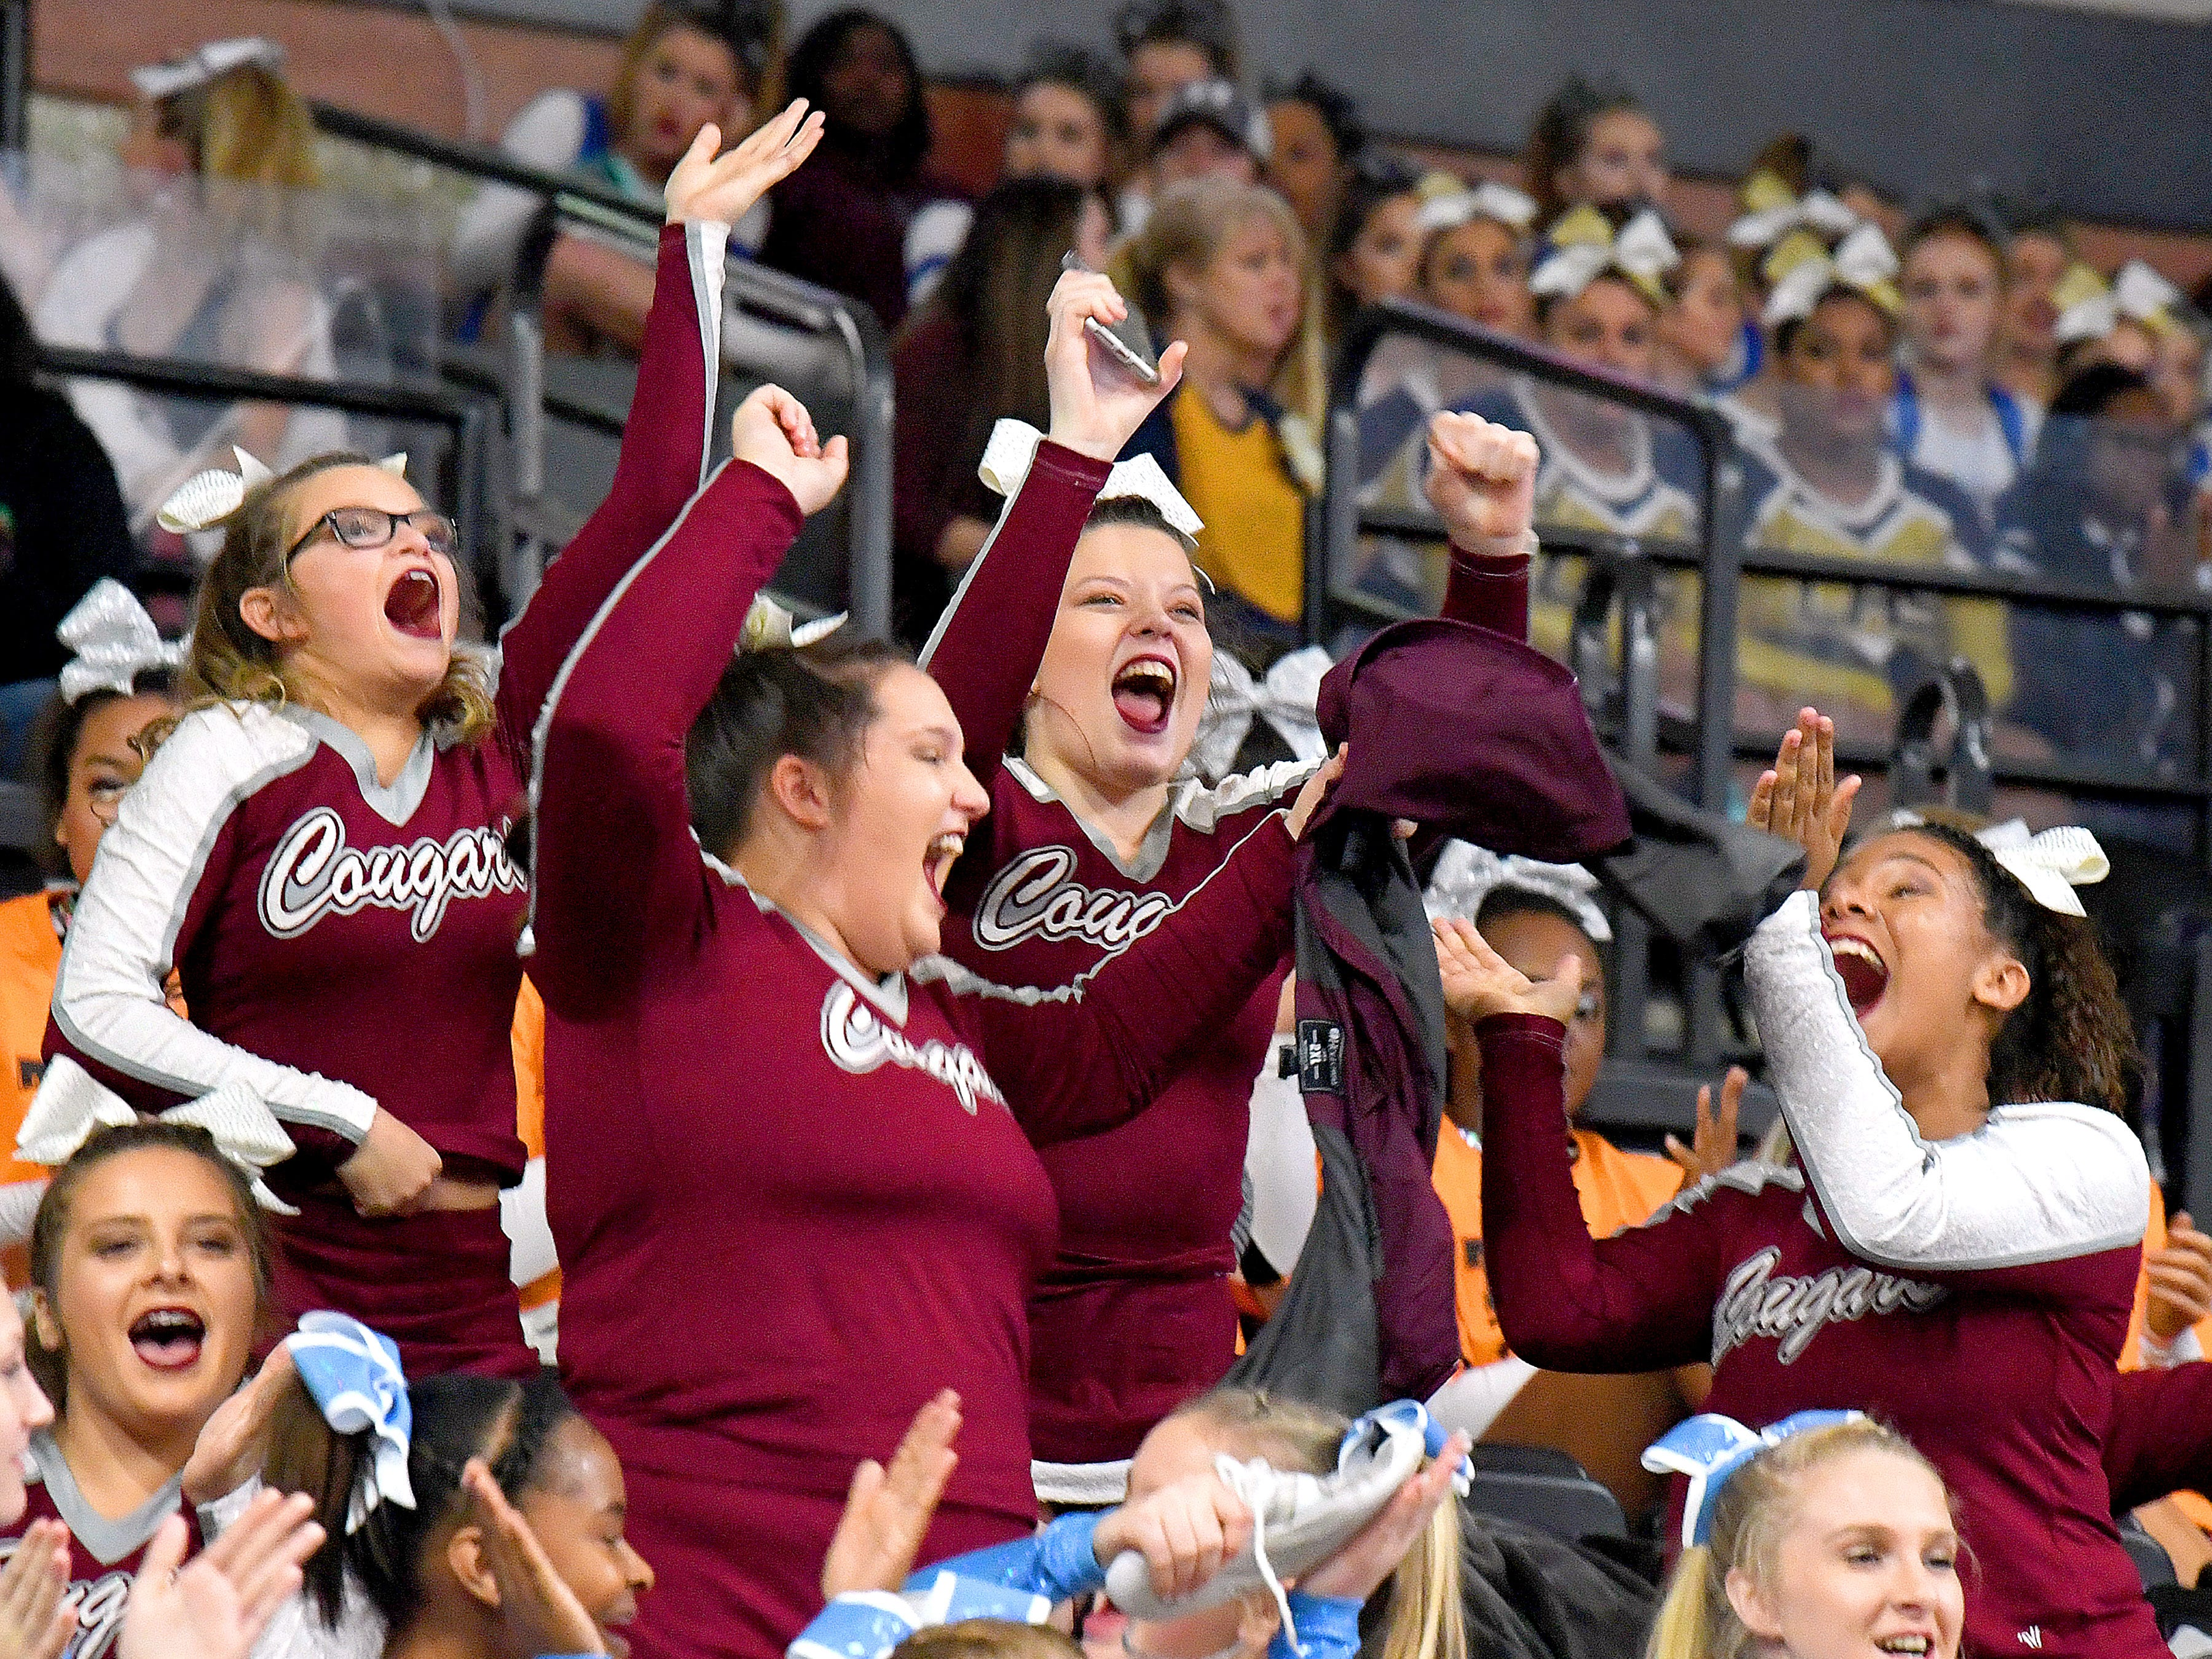 Members of the Stuarts Draft's competition cheer team celebrate on hearing the have made it into the final round during the VHSL Competition Cheer Championships in Richmond on Saturday, Nov. 3, 2018.